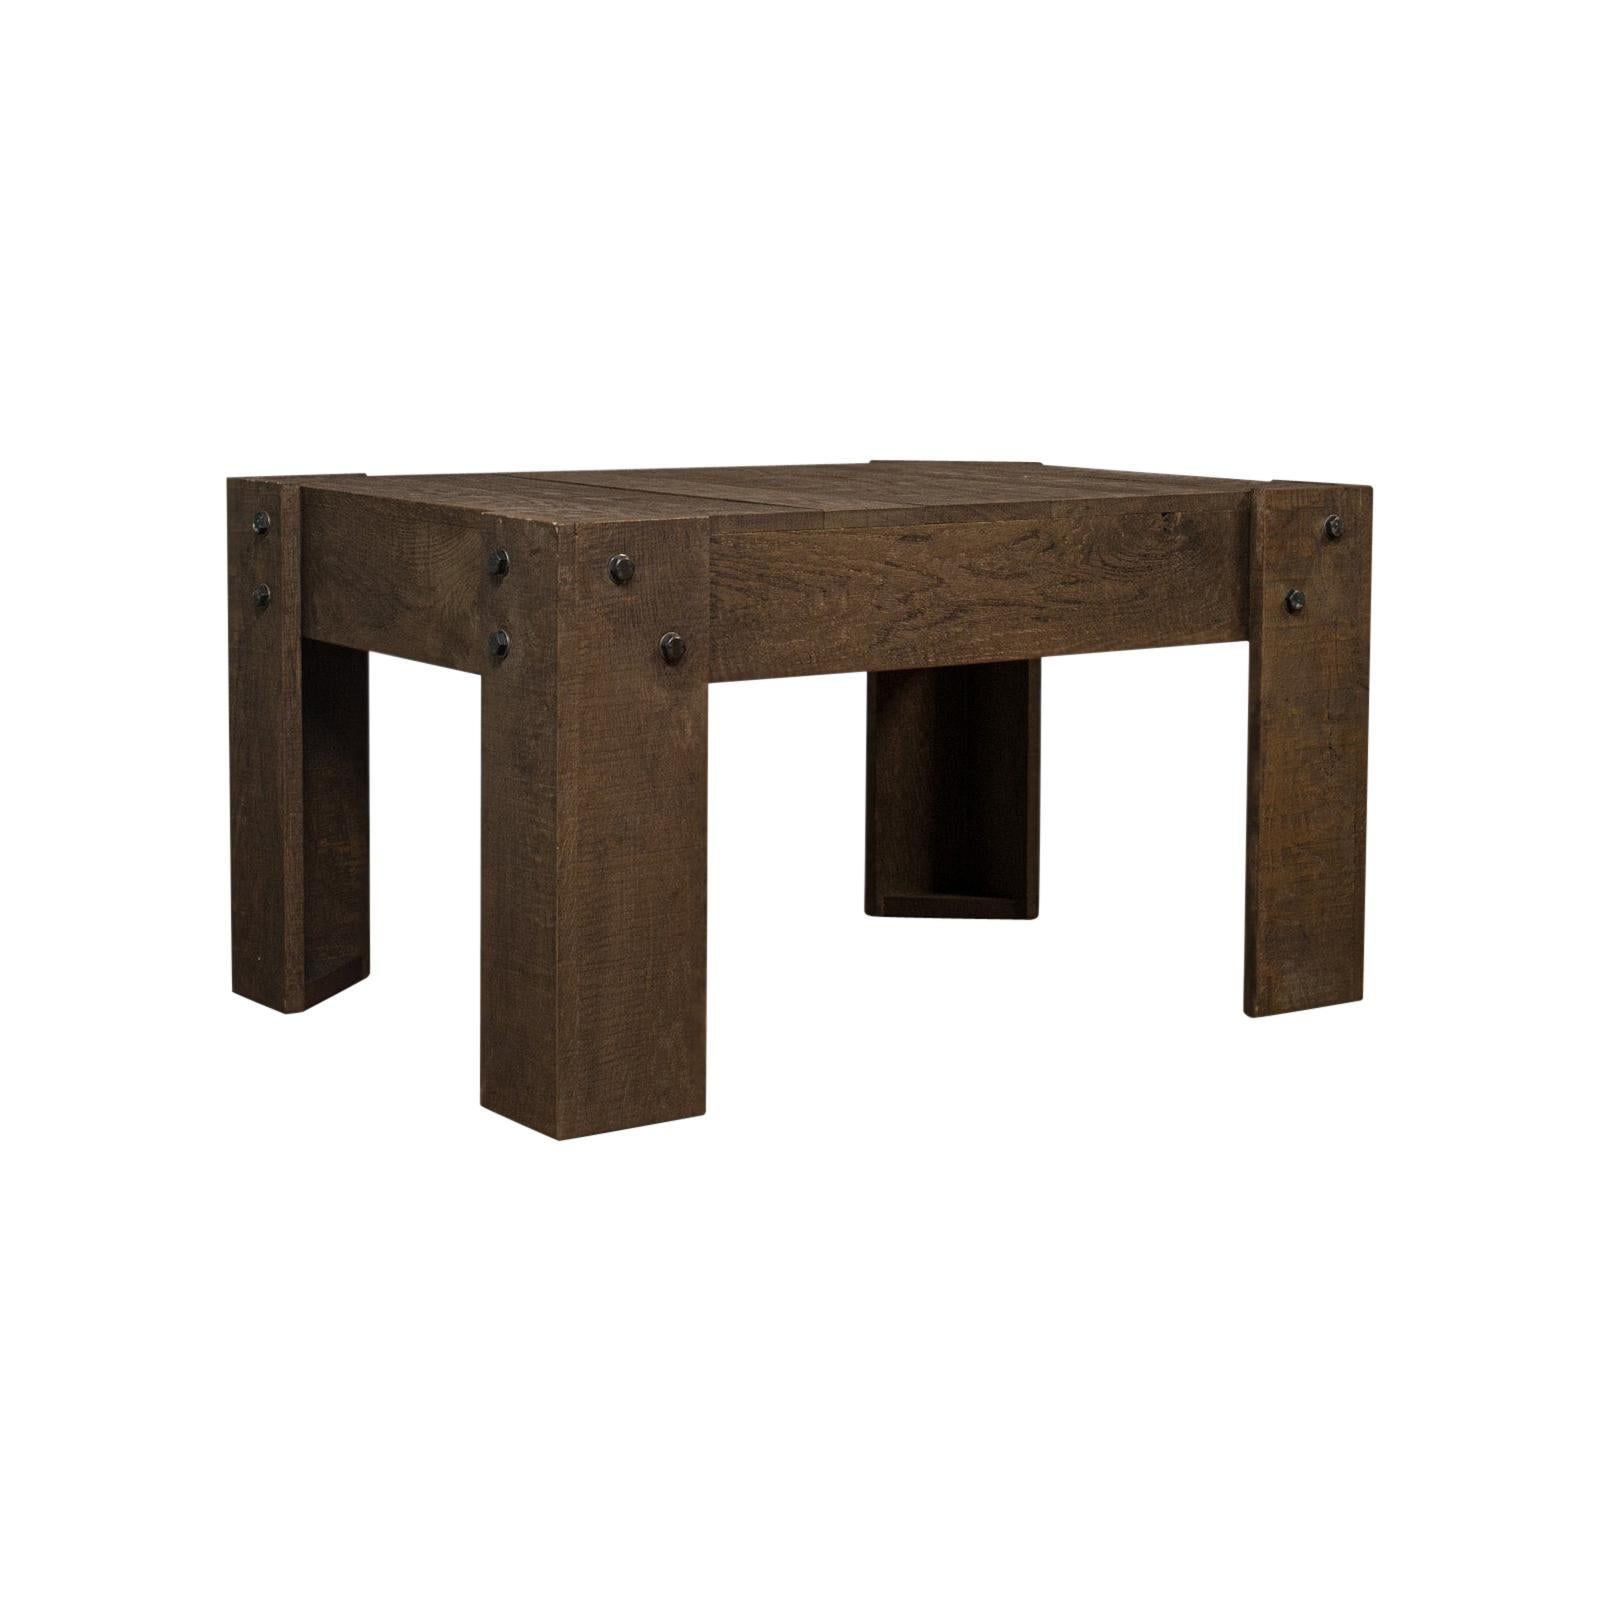 Vintage Coffee Table, Rustic, English, Oak, Occasional, Side, Industrial